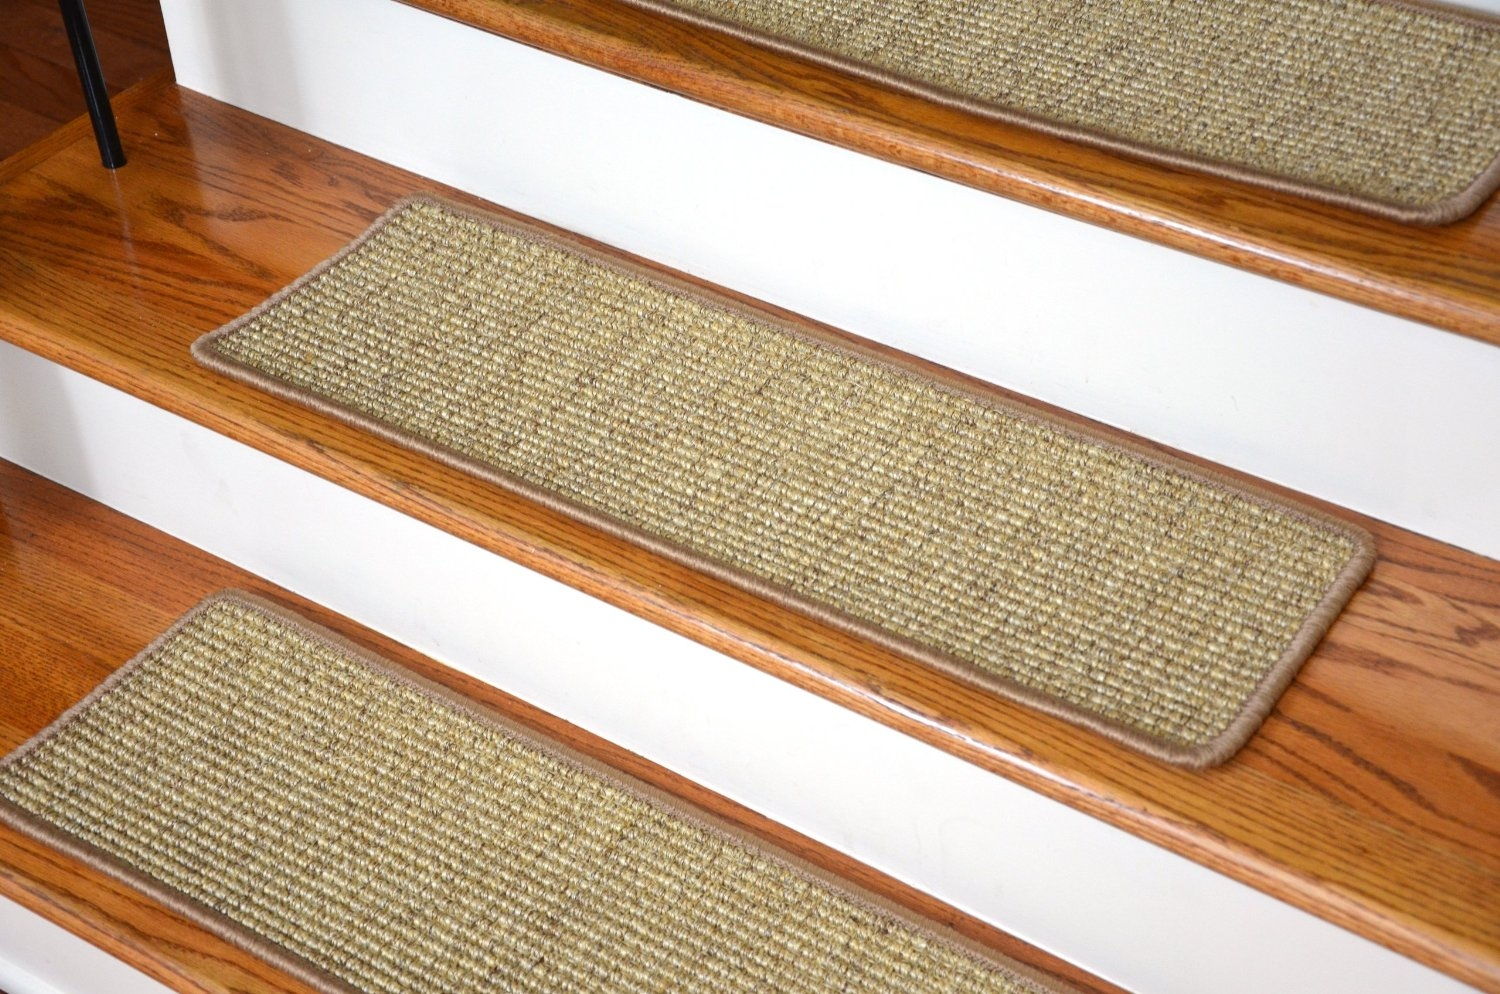 Decor Beautiful Stair Tread Covers Make An Elegant Addition To In Indoor Stair Tread Mats (Image 3 of 15)